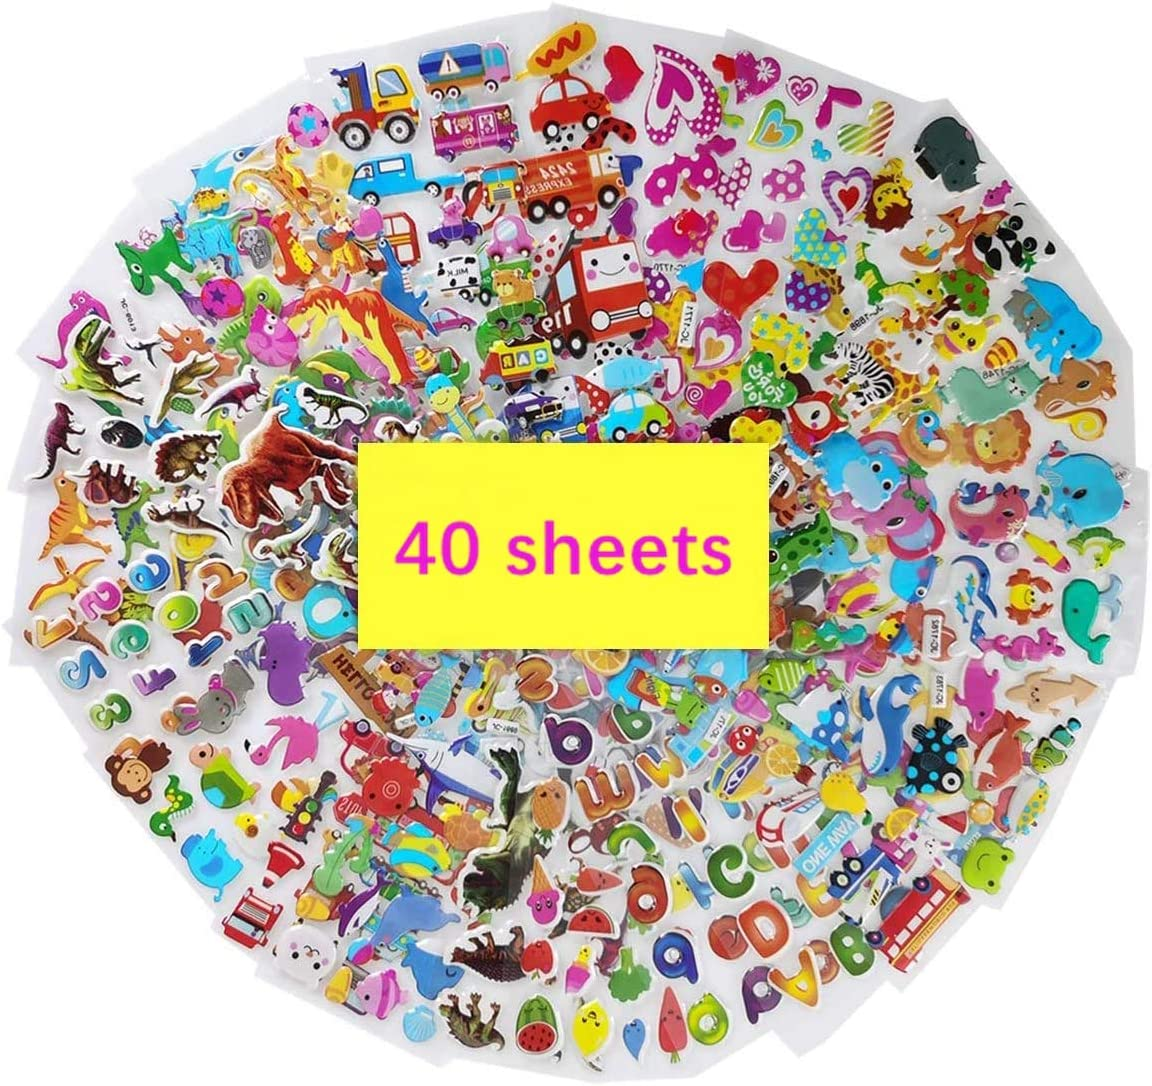 3D Puffy Stickers, Variety 40 Sheets Kids Bulk Stickers 1000+ Fun Stickers for Kids Toddlers Including Dinosaurs, Cars, Trucks, Airplane, Food, Letters, Flowers, Numbers, Fruit, Hearts and More